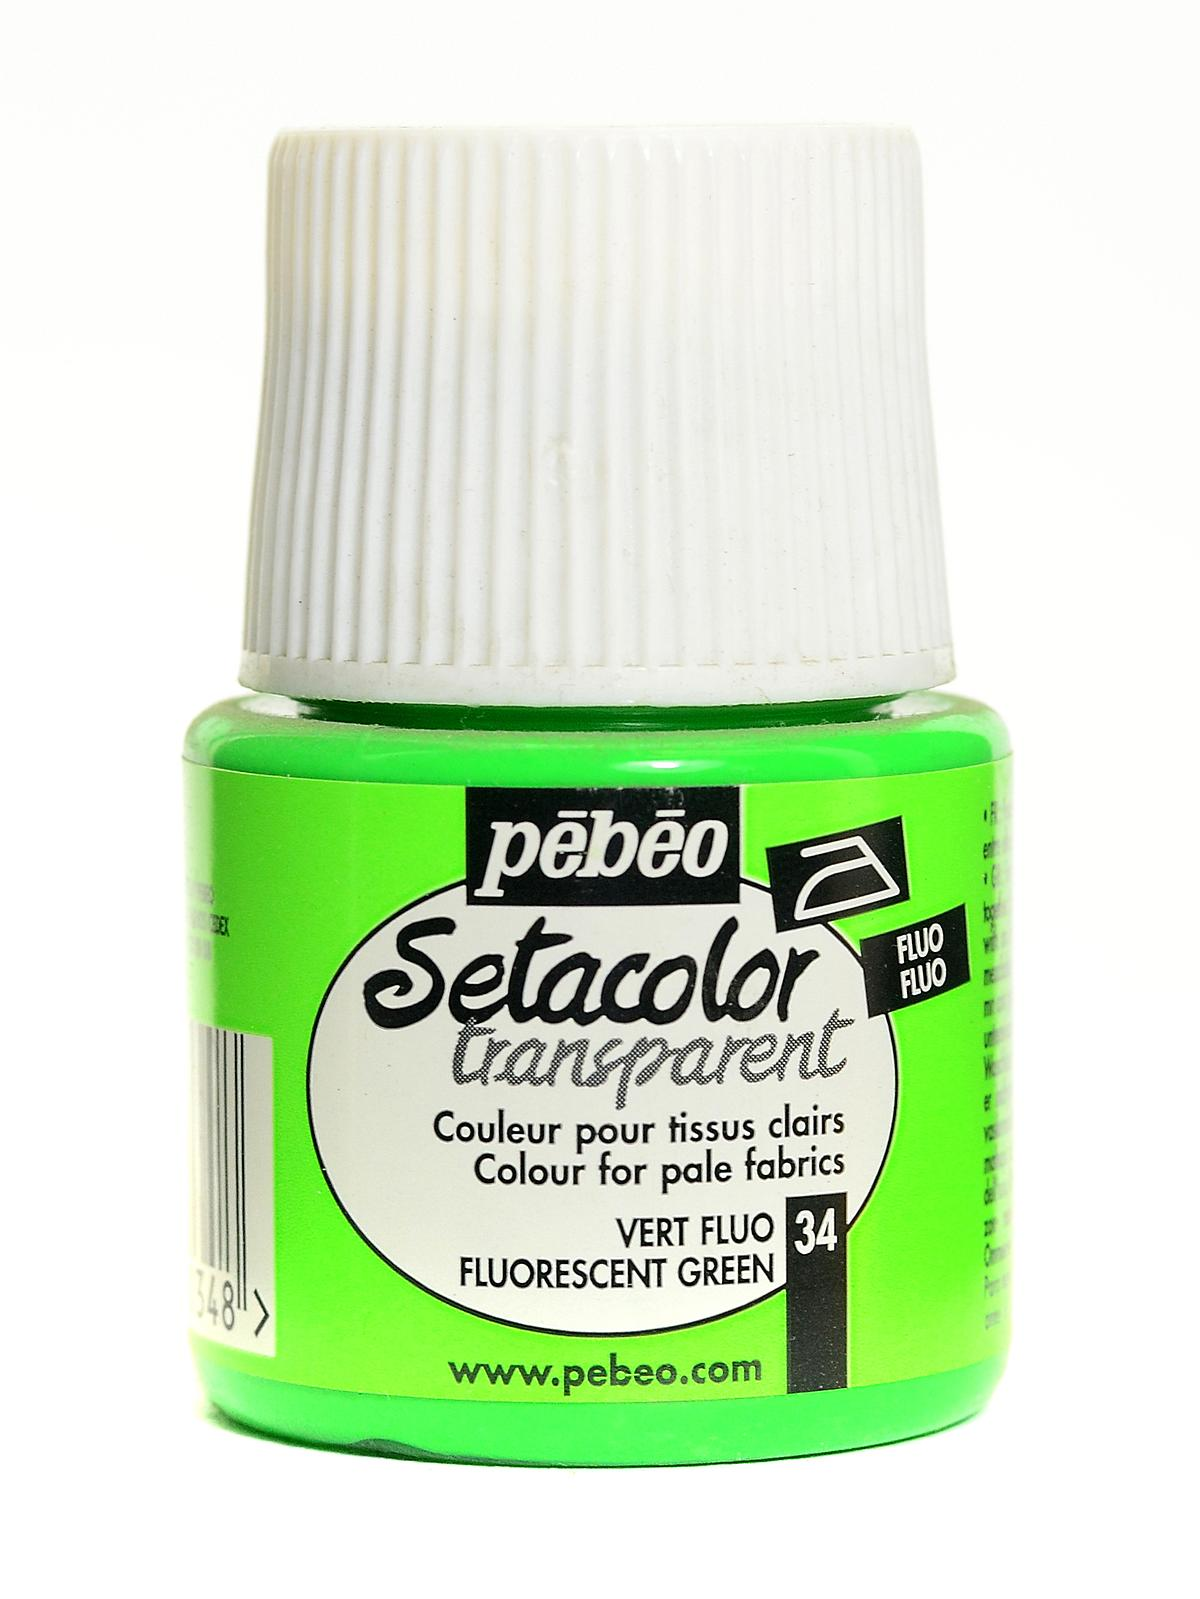 pebeo setacolor fabric paint instructions